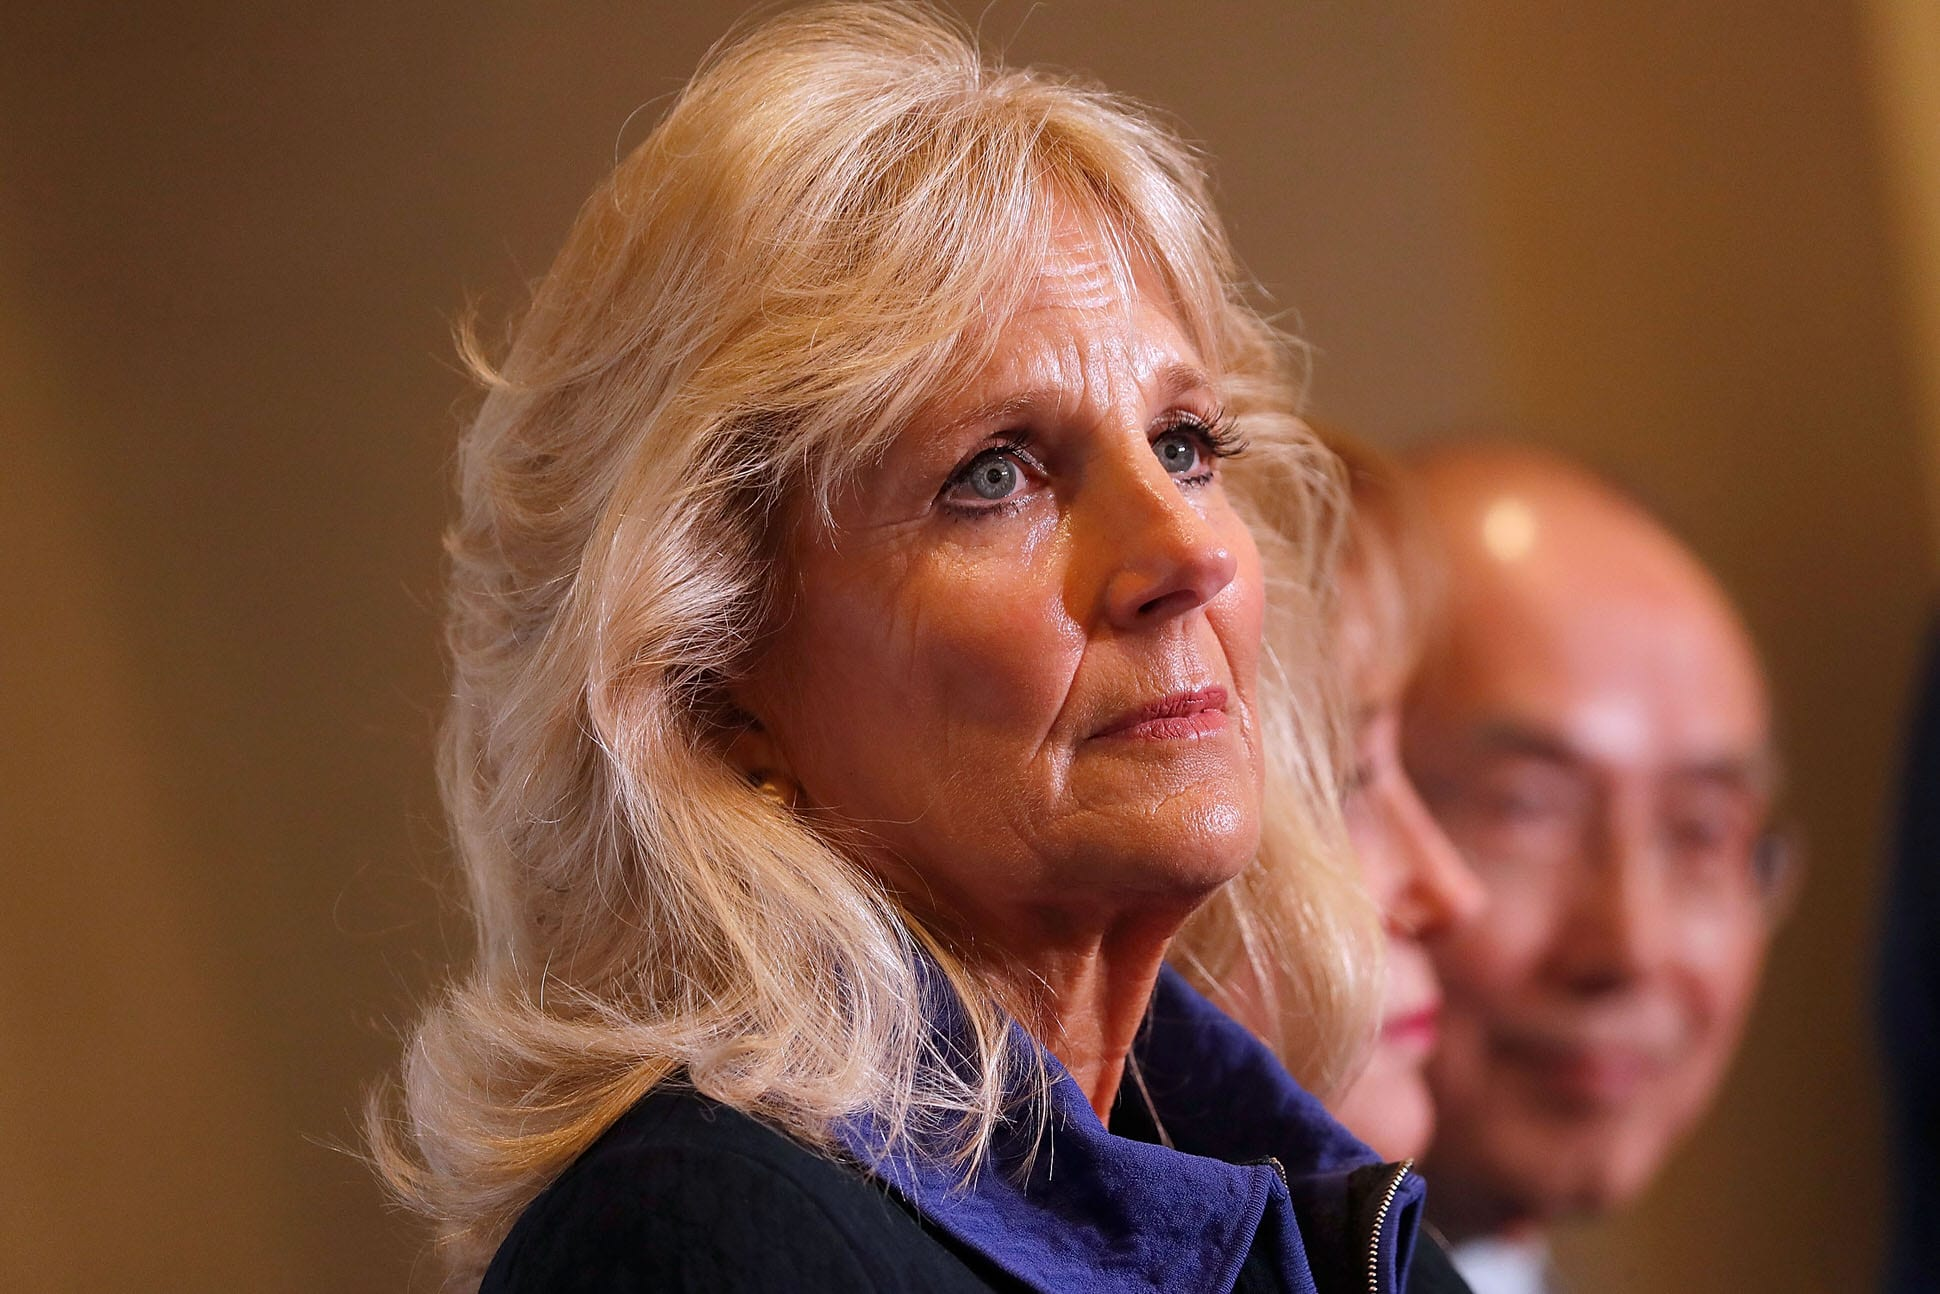 'I've had to fight to be taken seriously': Women with Ph.Ds respond to Dr. Jill Biden column